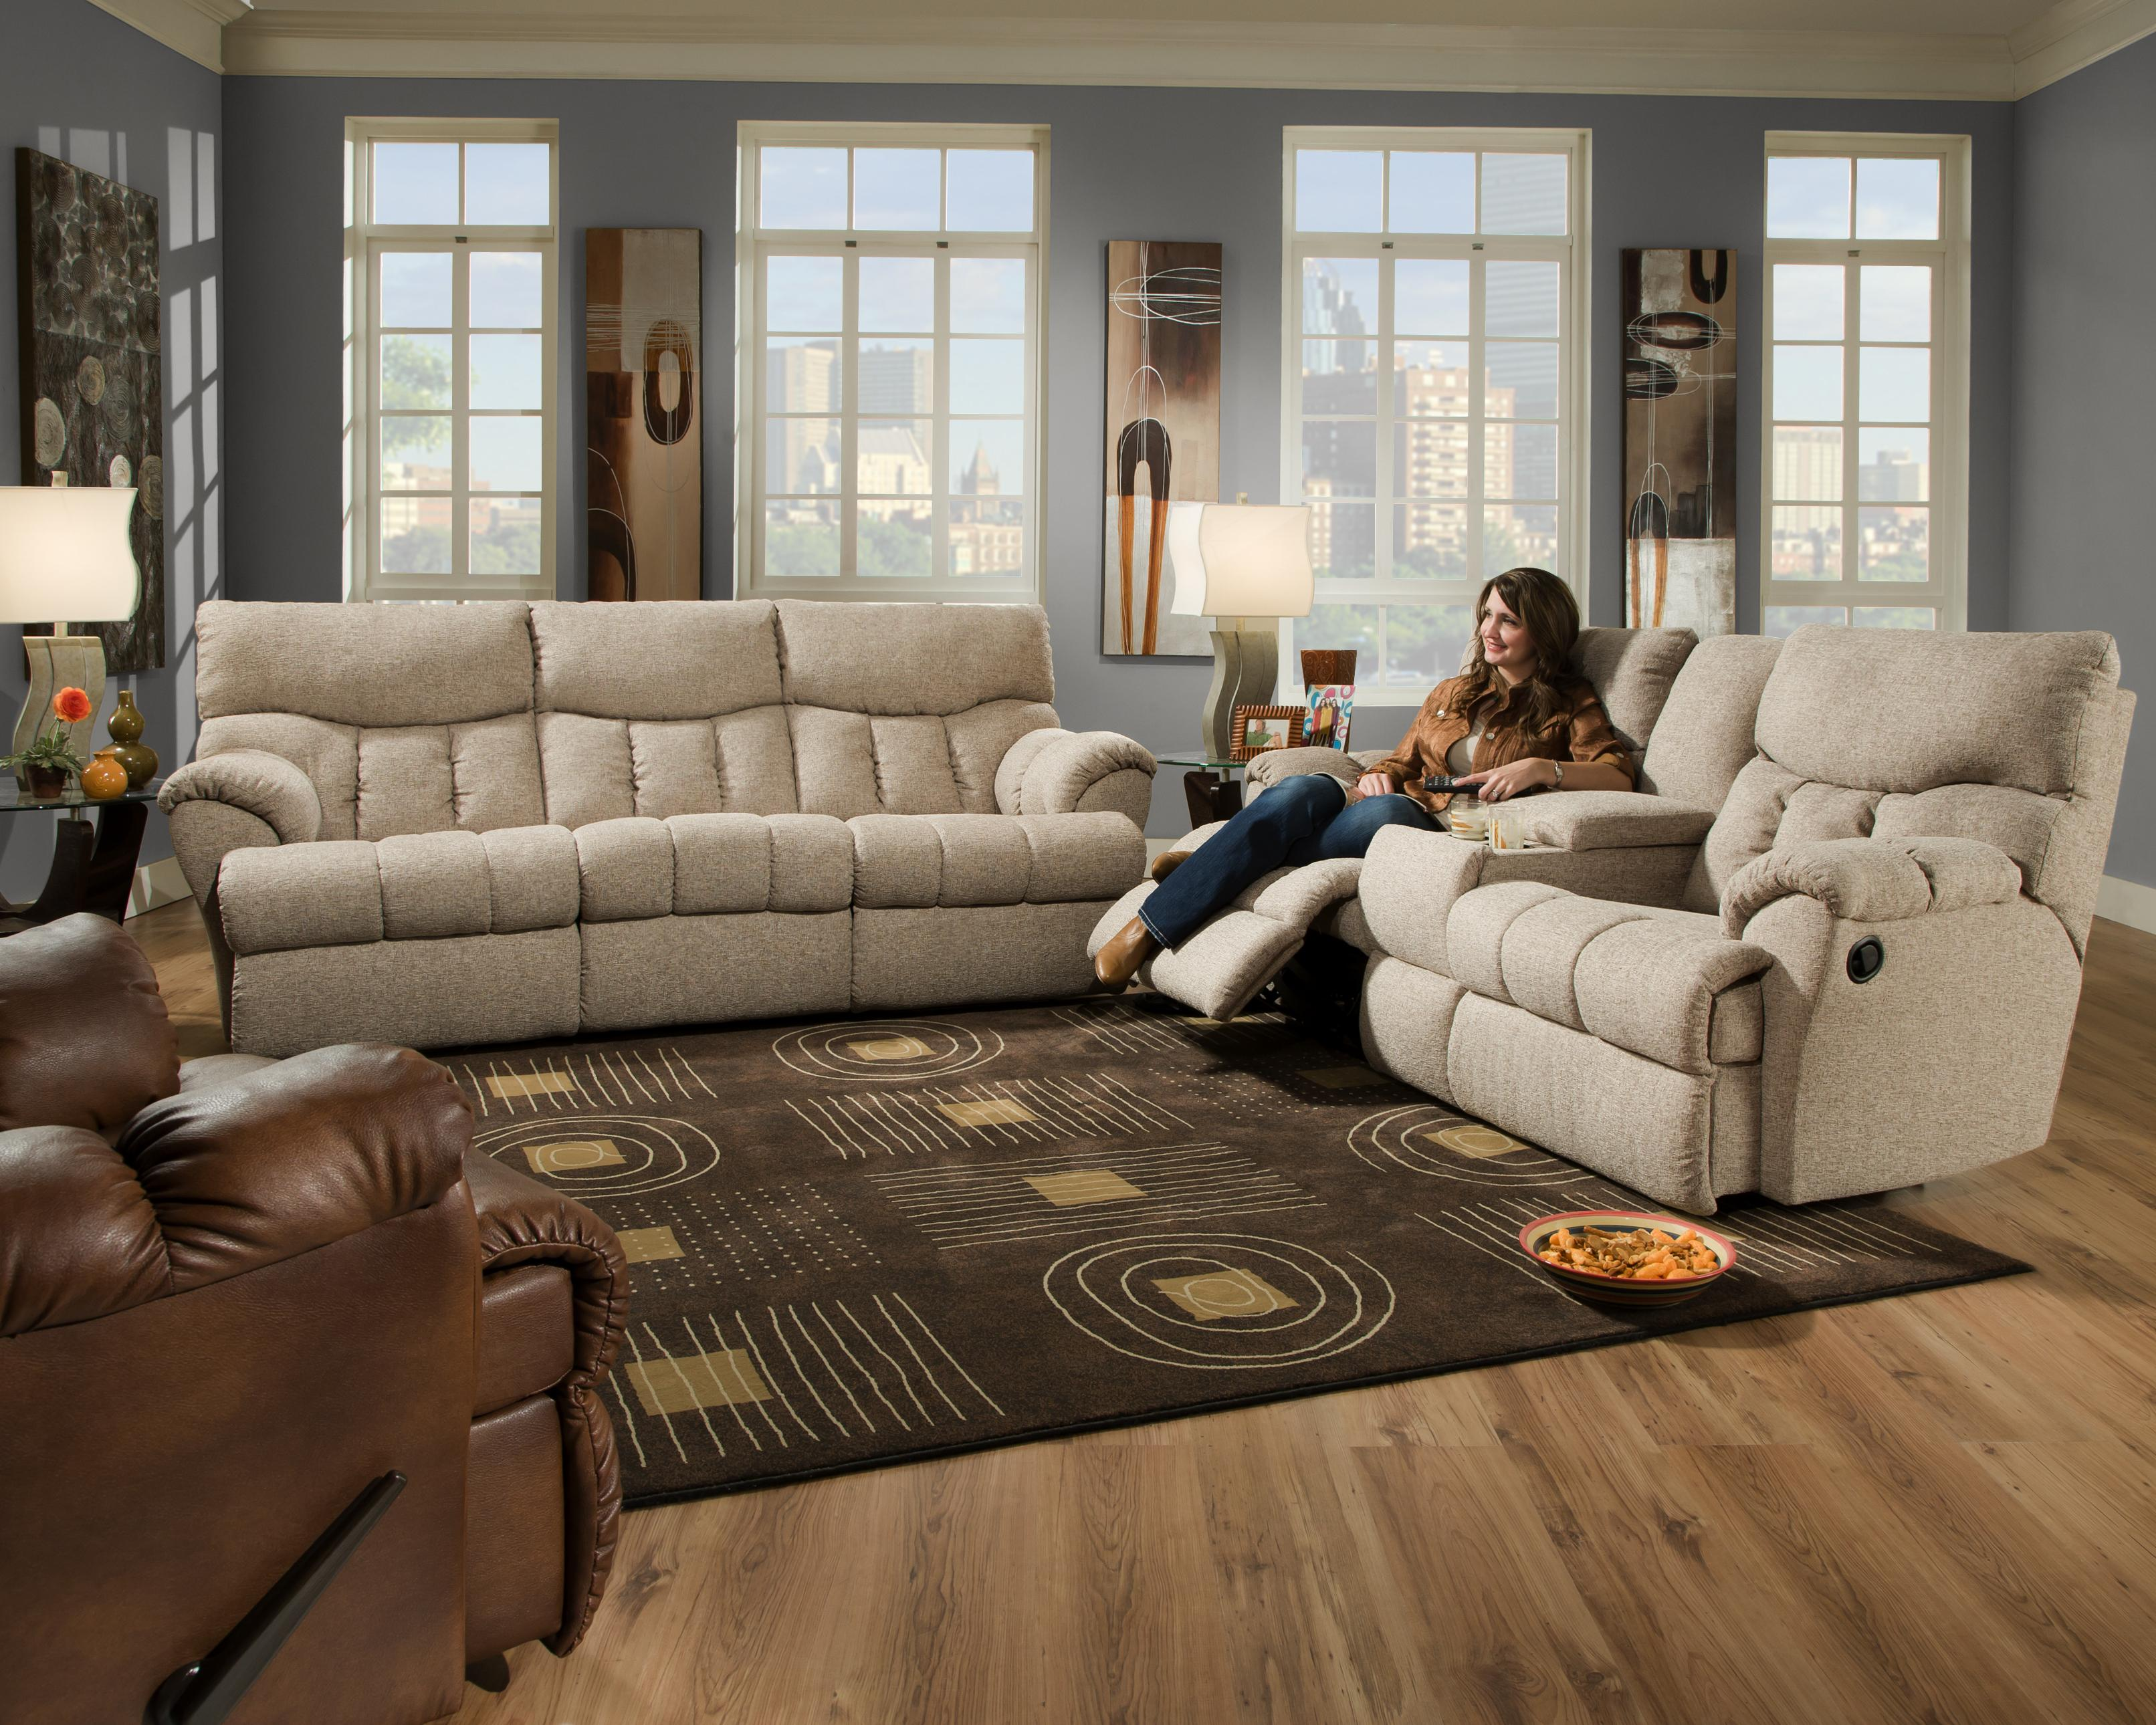 ma cushions rotmans sofas item coil plush collections providence by sofa ashley couches worcester lss ri with signature and couch pillows boston park scatterback central seat design